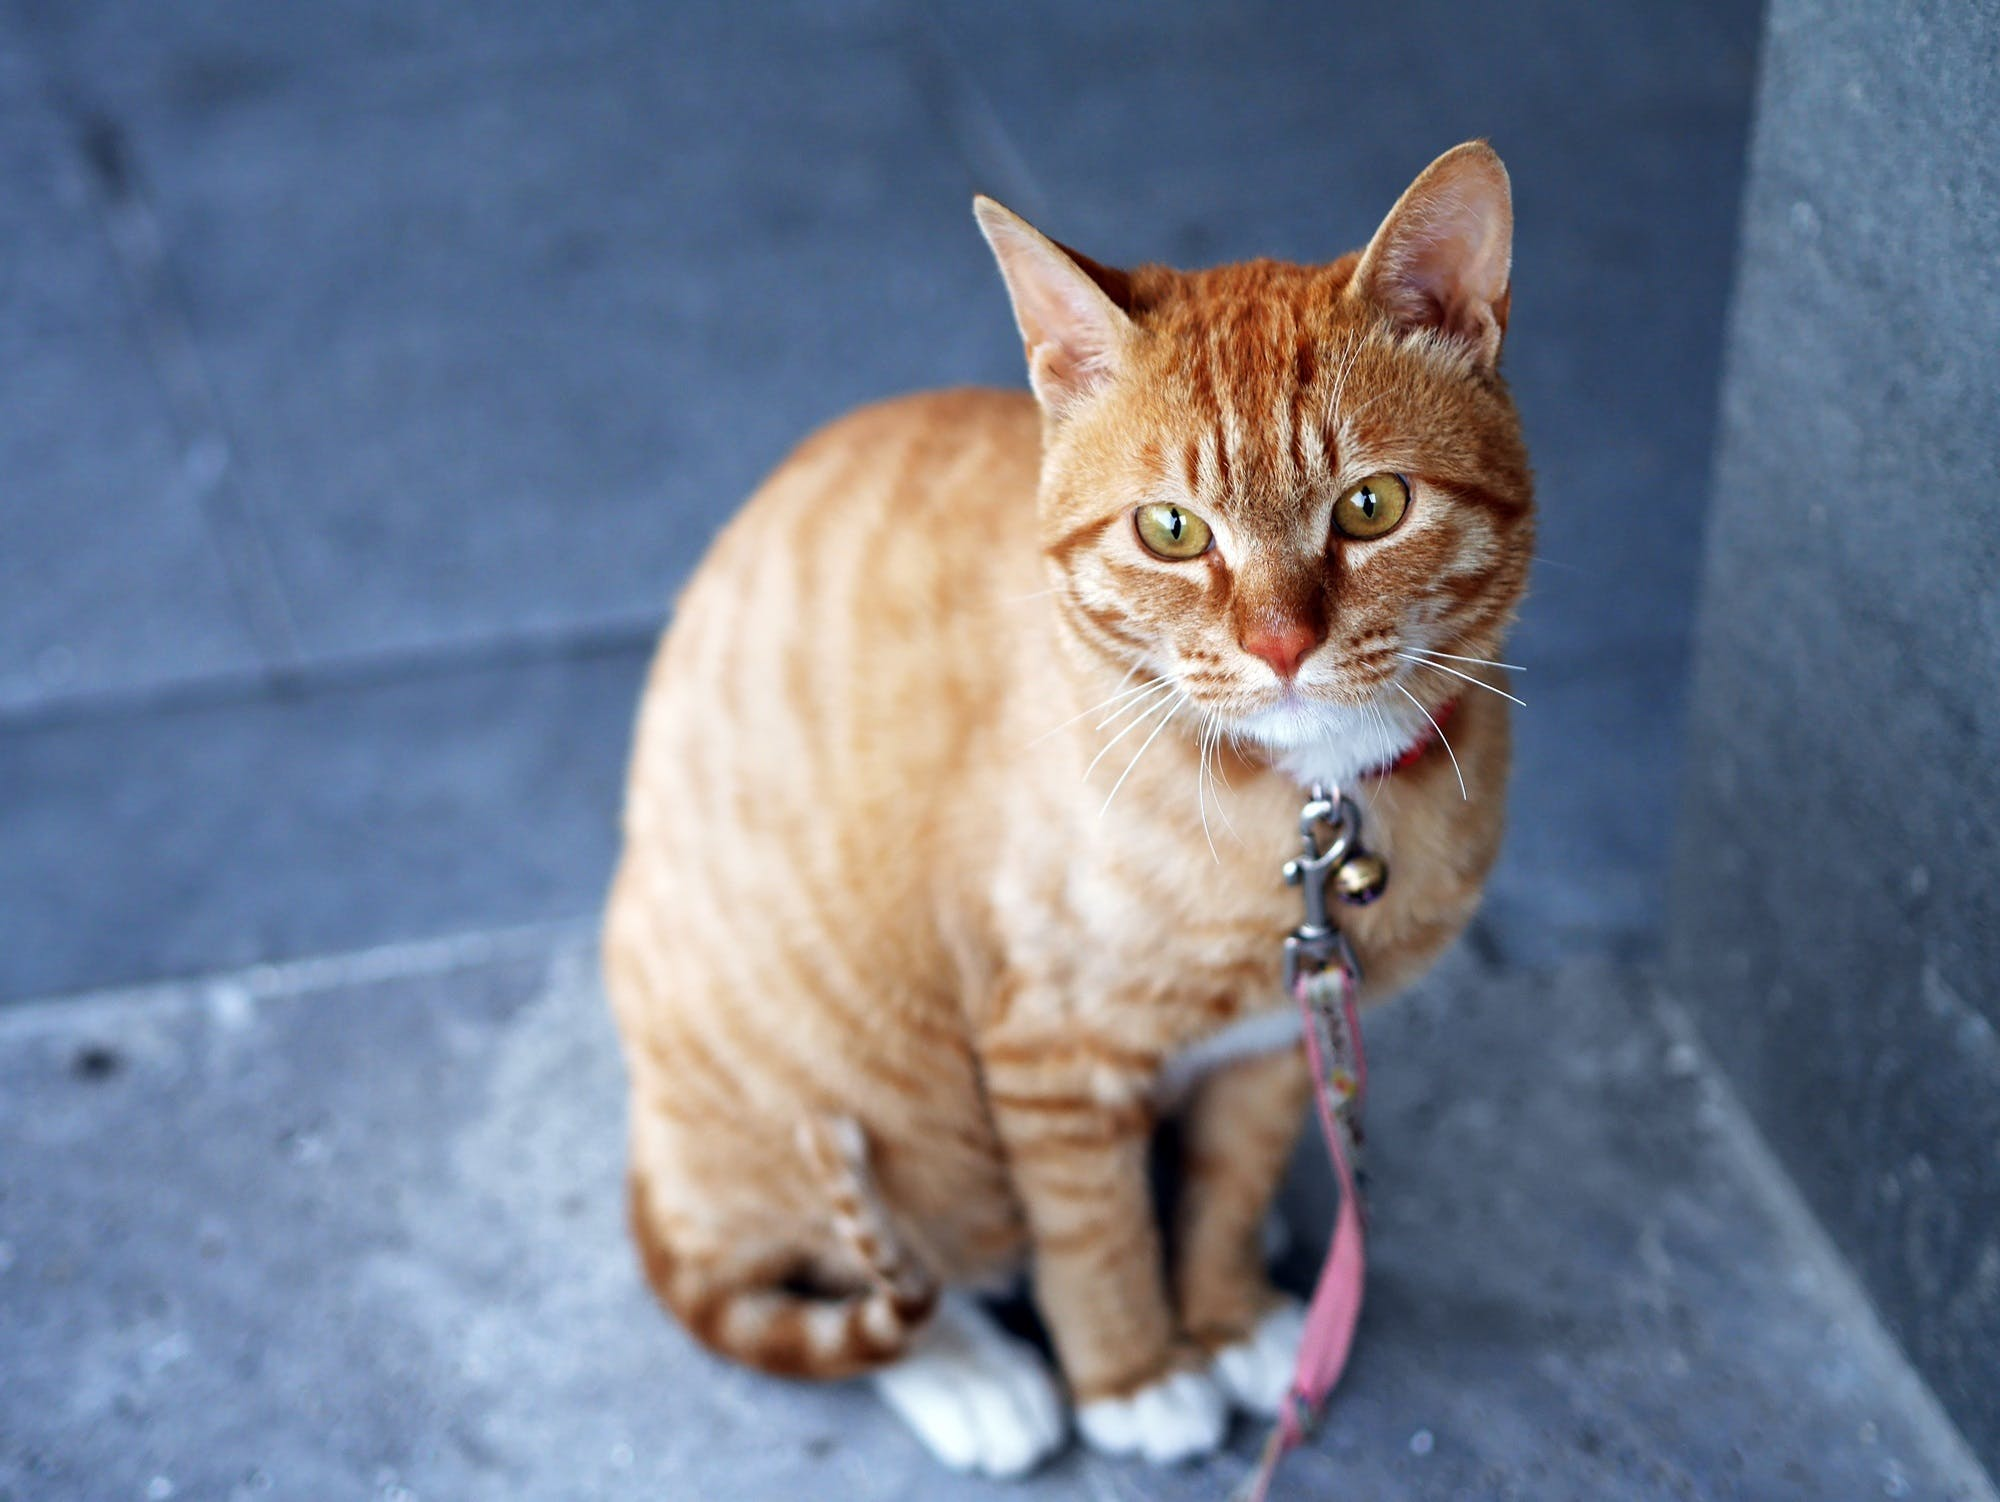 Orange Tabby Cat With Pink Leash